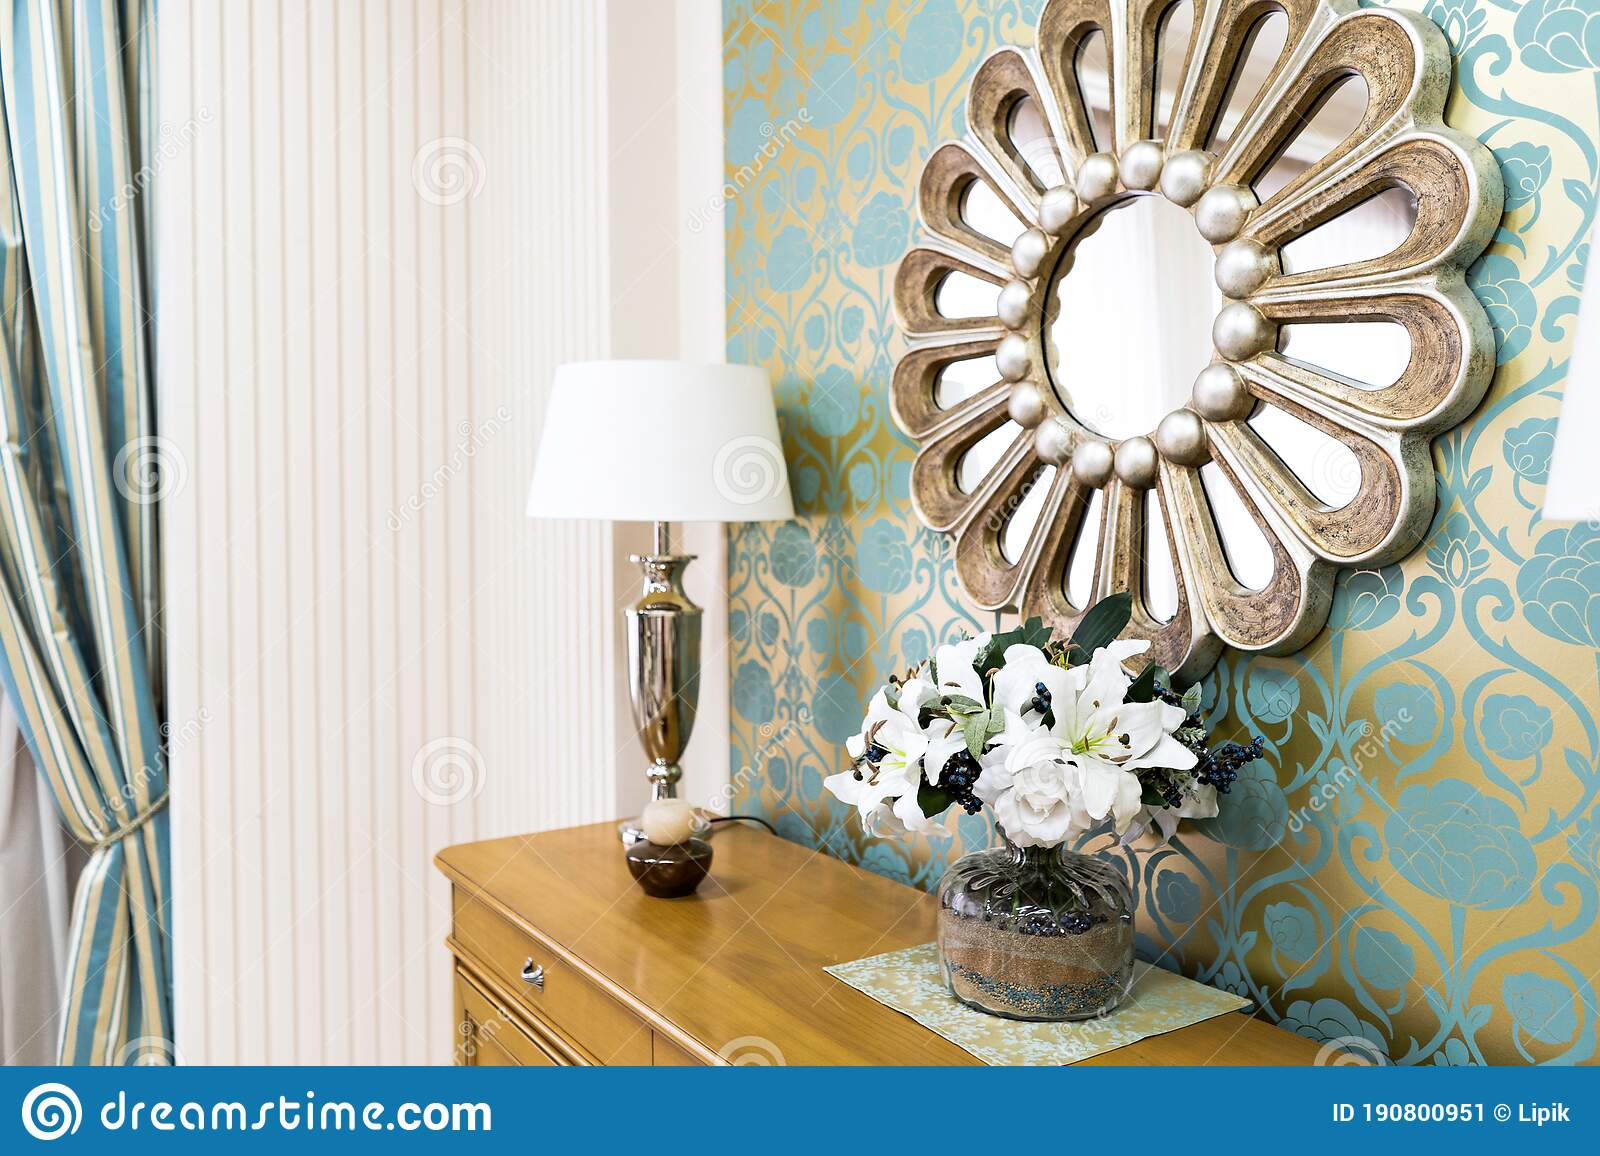 Stylish Vintage Style Home Interior With Wooden Commode And Decorated Round Mirror Symmetrical Reading Lamps On Commode Stock Image Image Of Wainscoting Orange 190800951